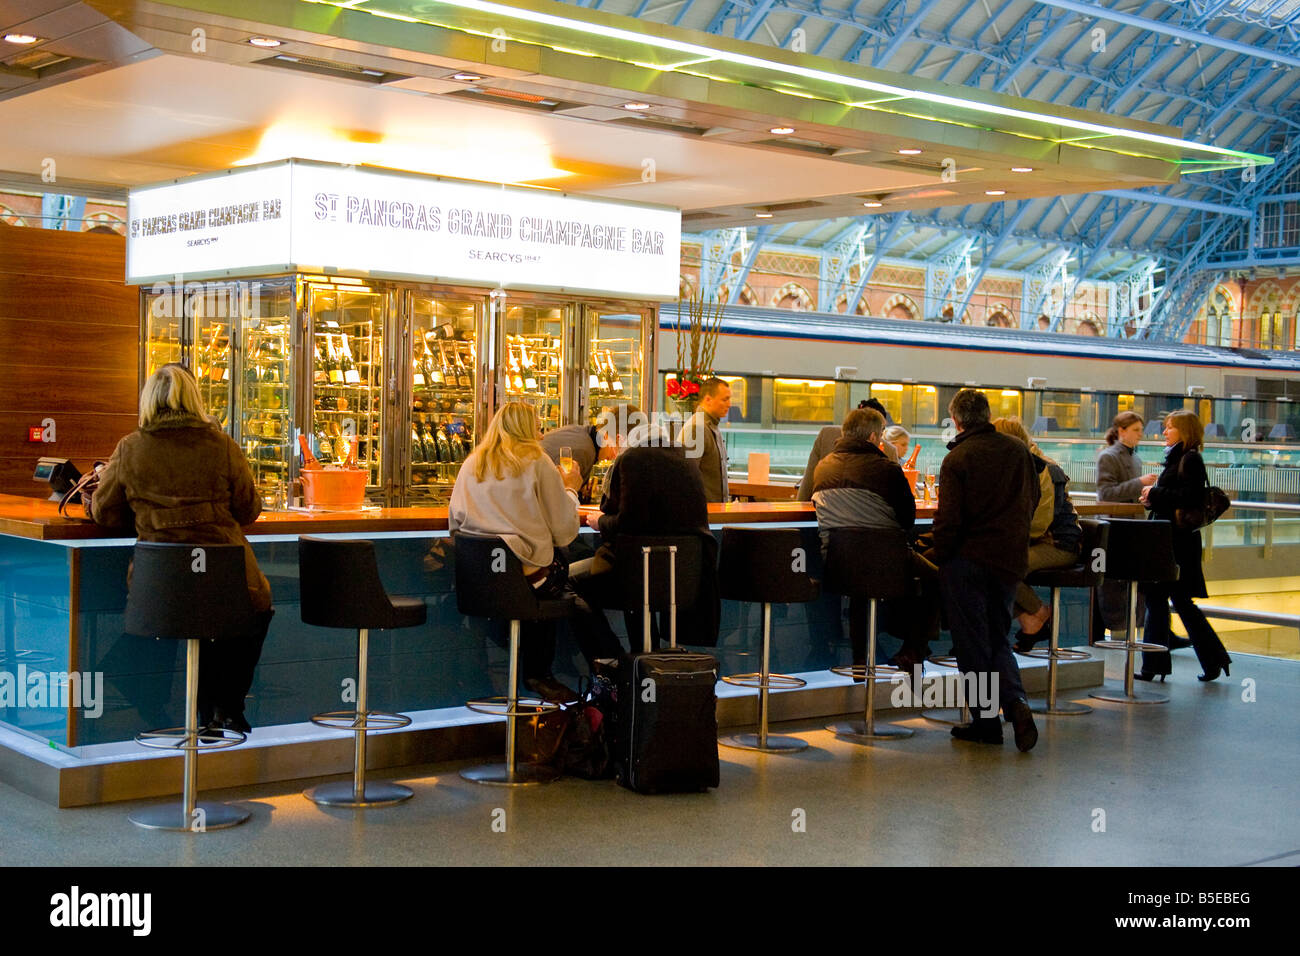 London , St Pancras Railway Train Station , The St. Pancras Grand Champagne Bar interior - Stock Image